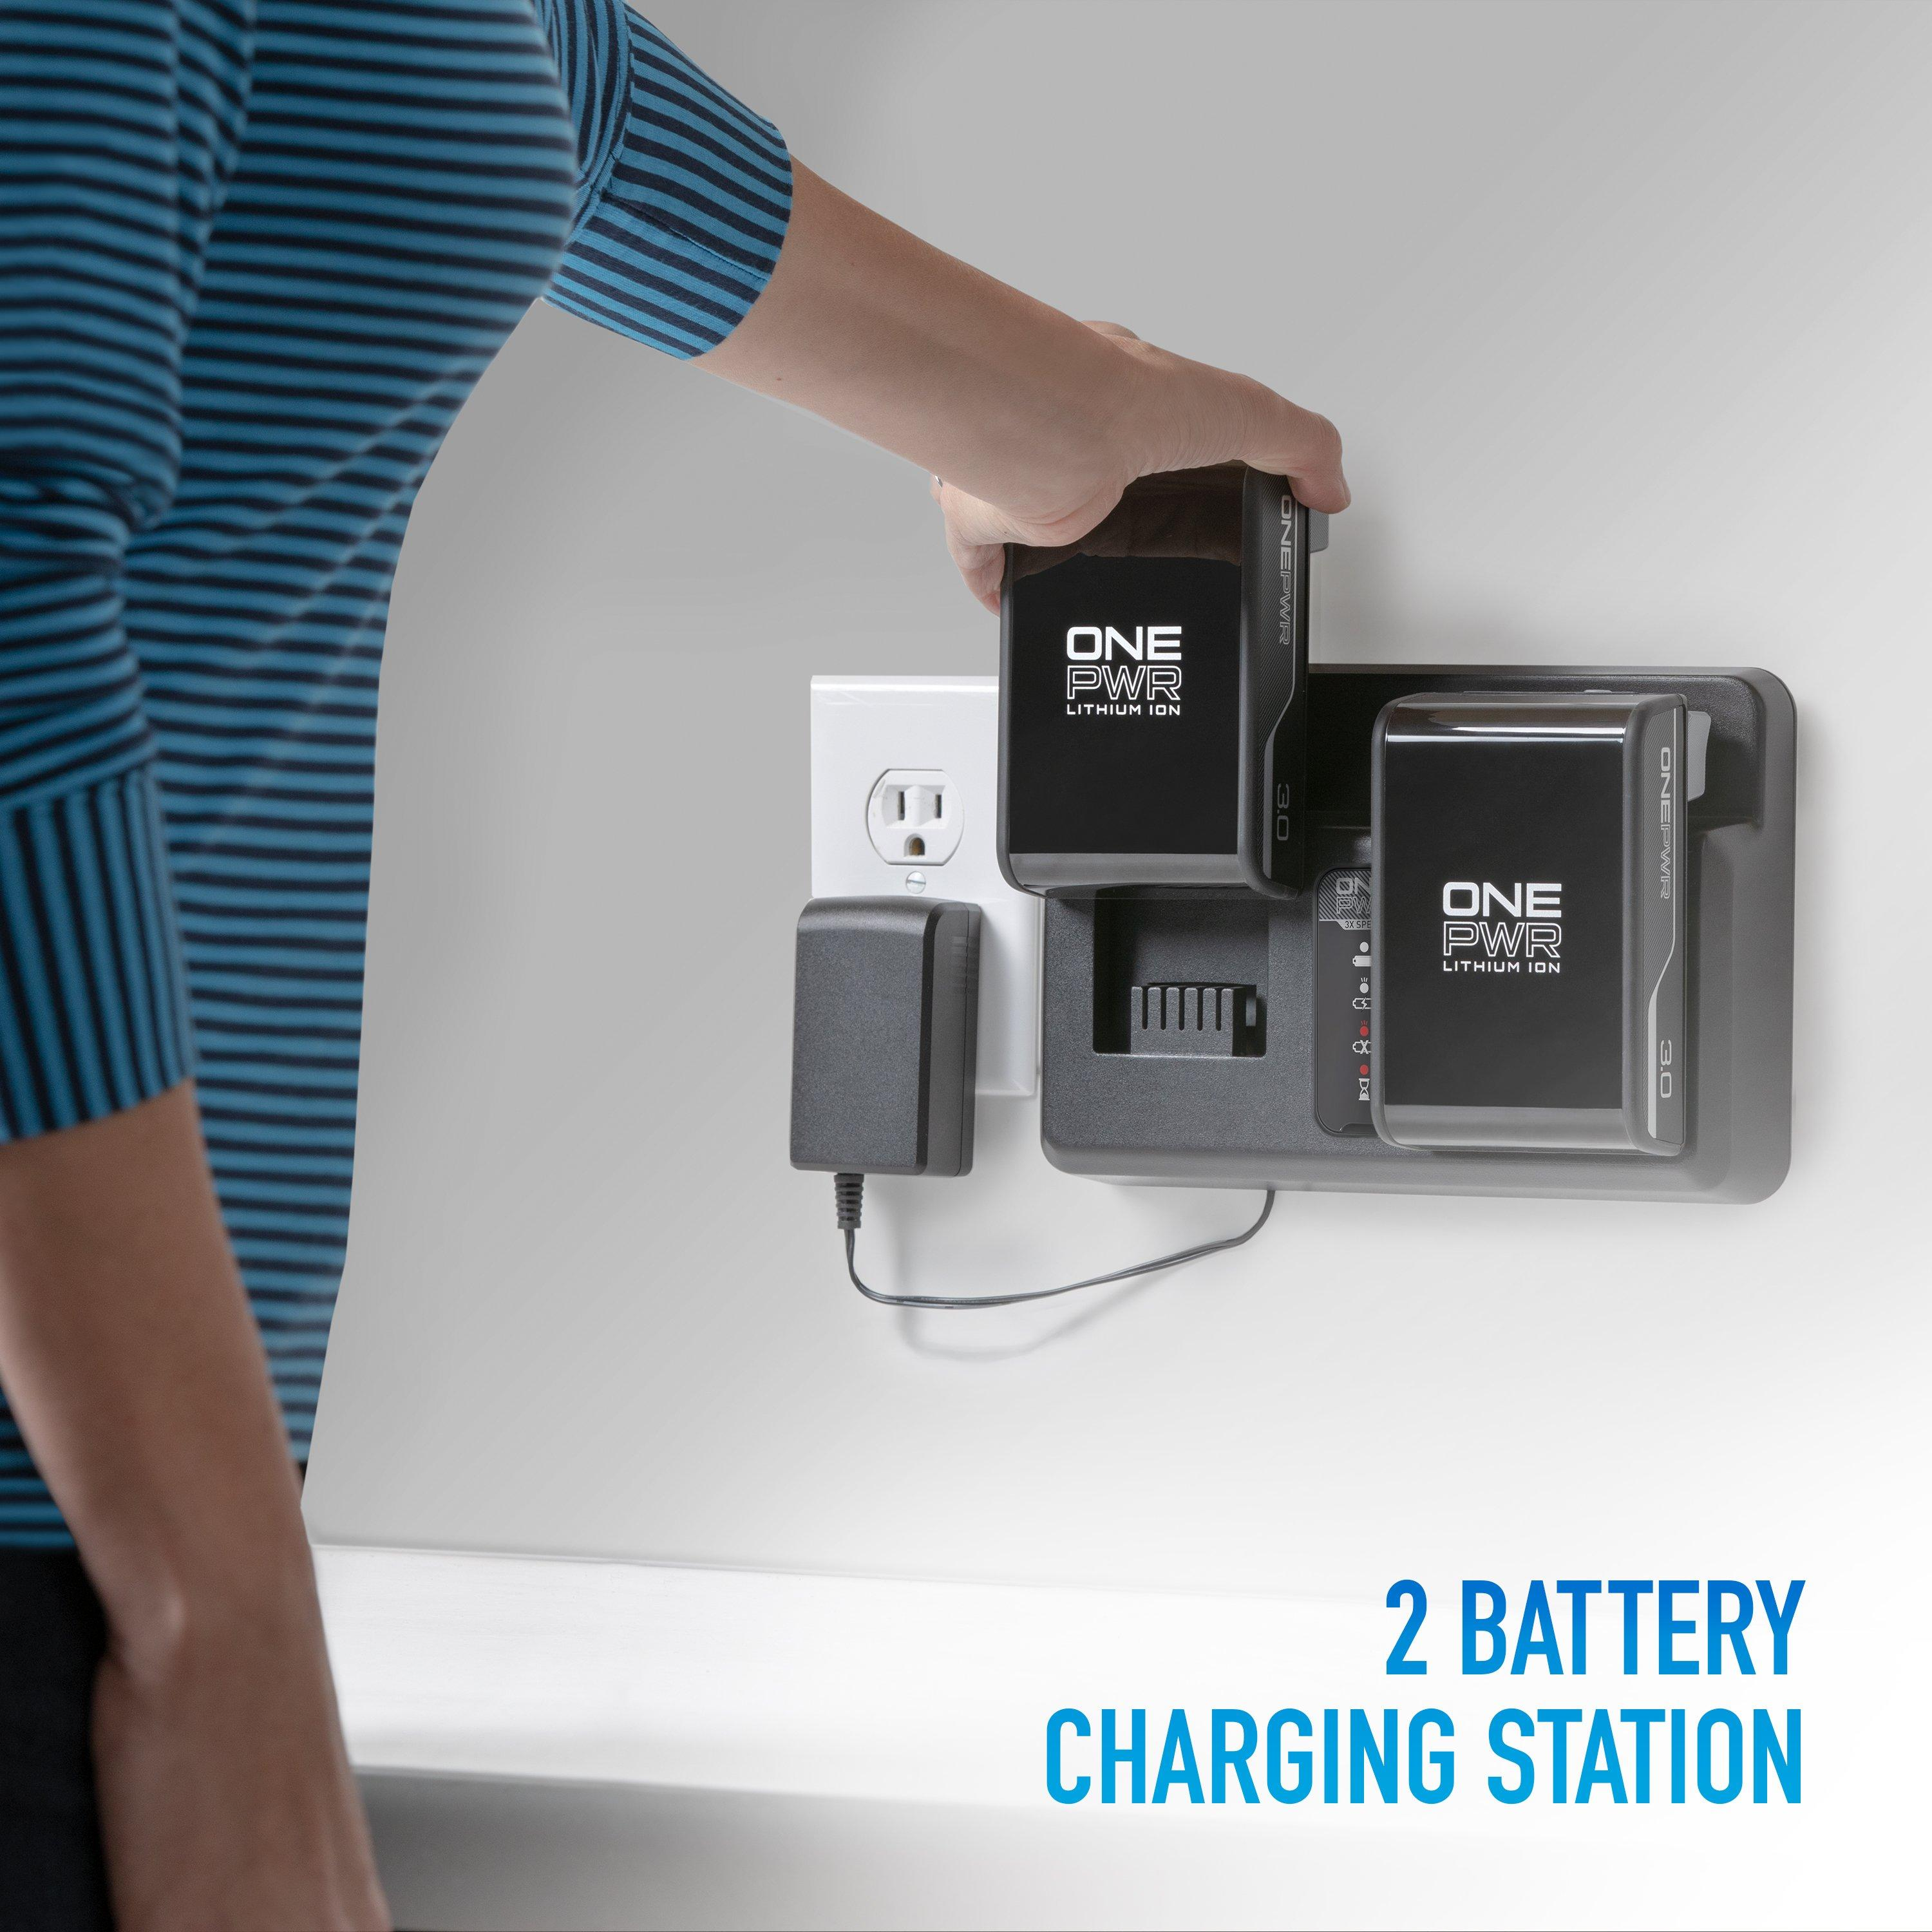 ONEPWR Dual Bay Battery Charger4